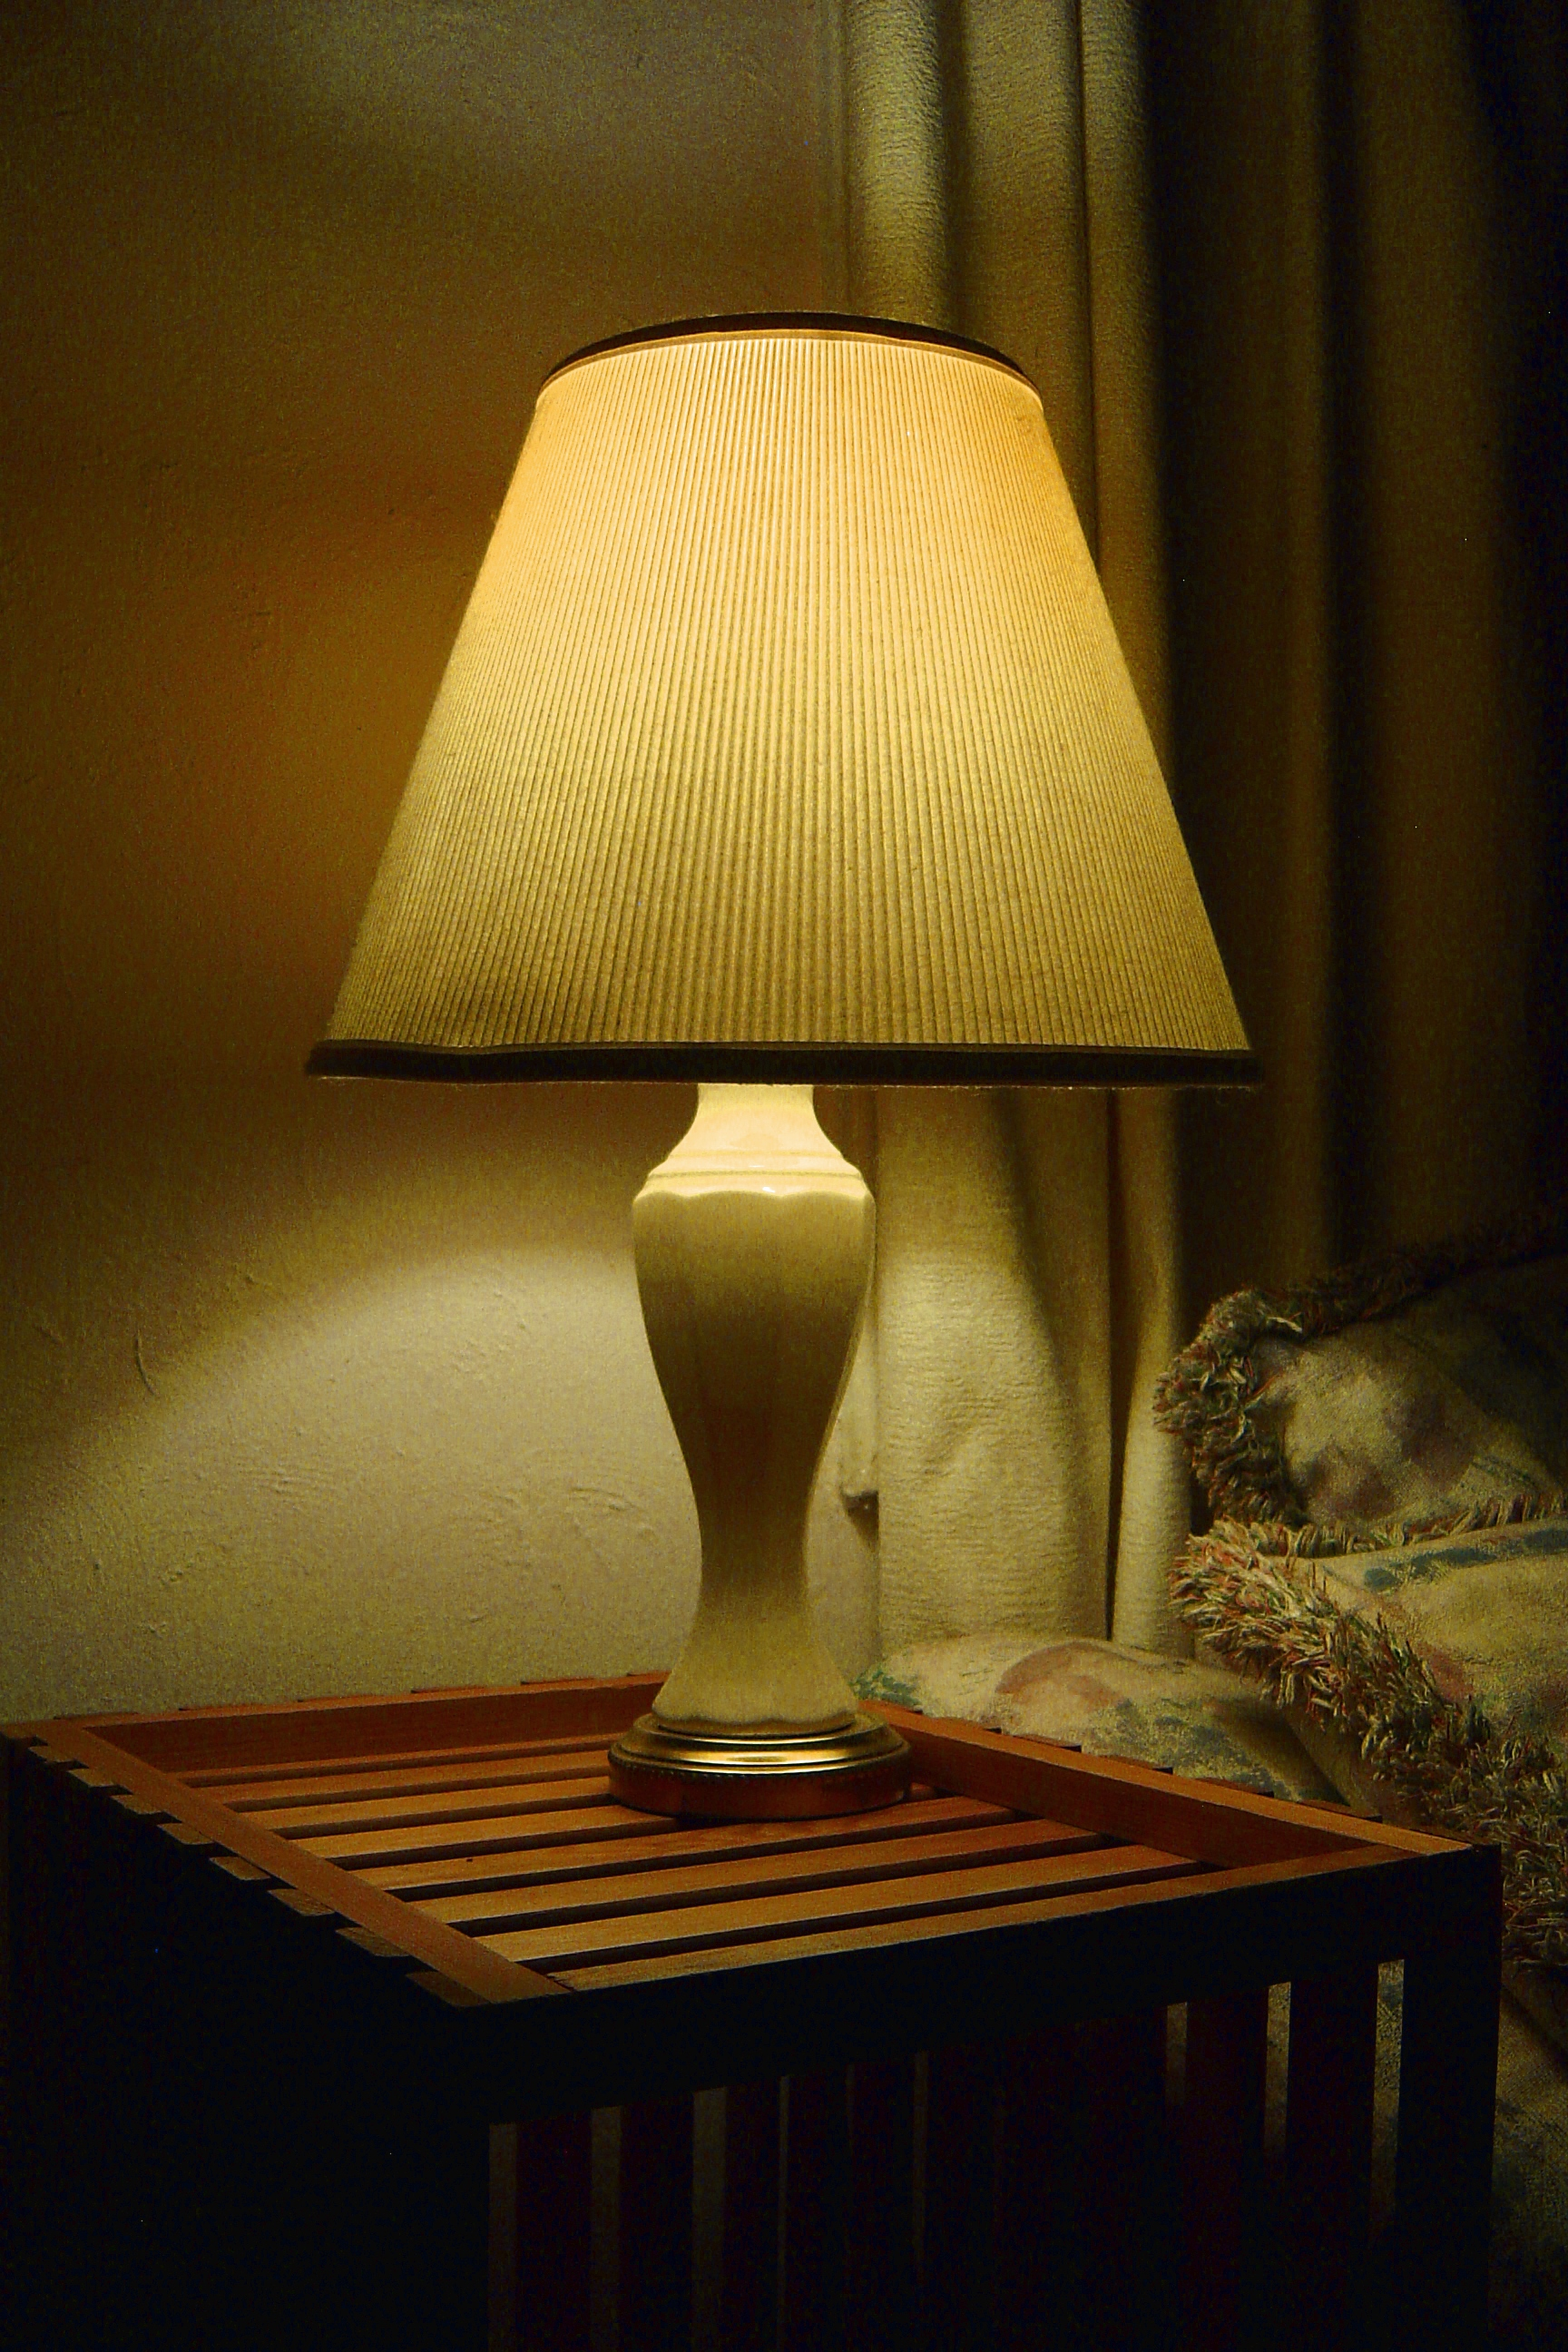 Living Room Lamp Picture  Free Photograph  Photos Public